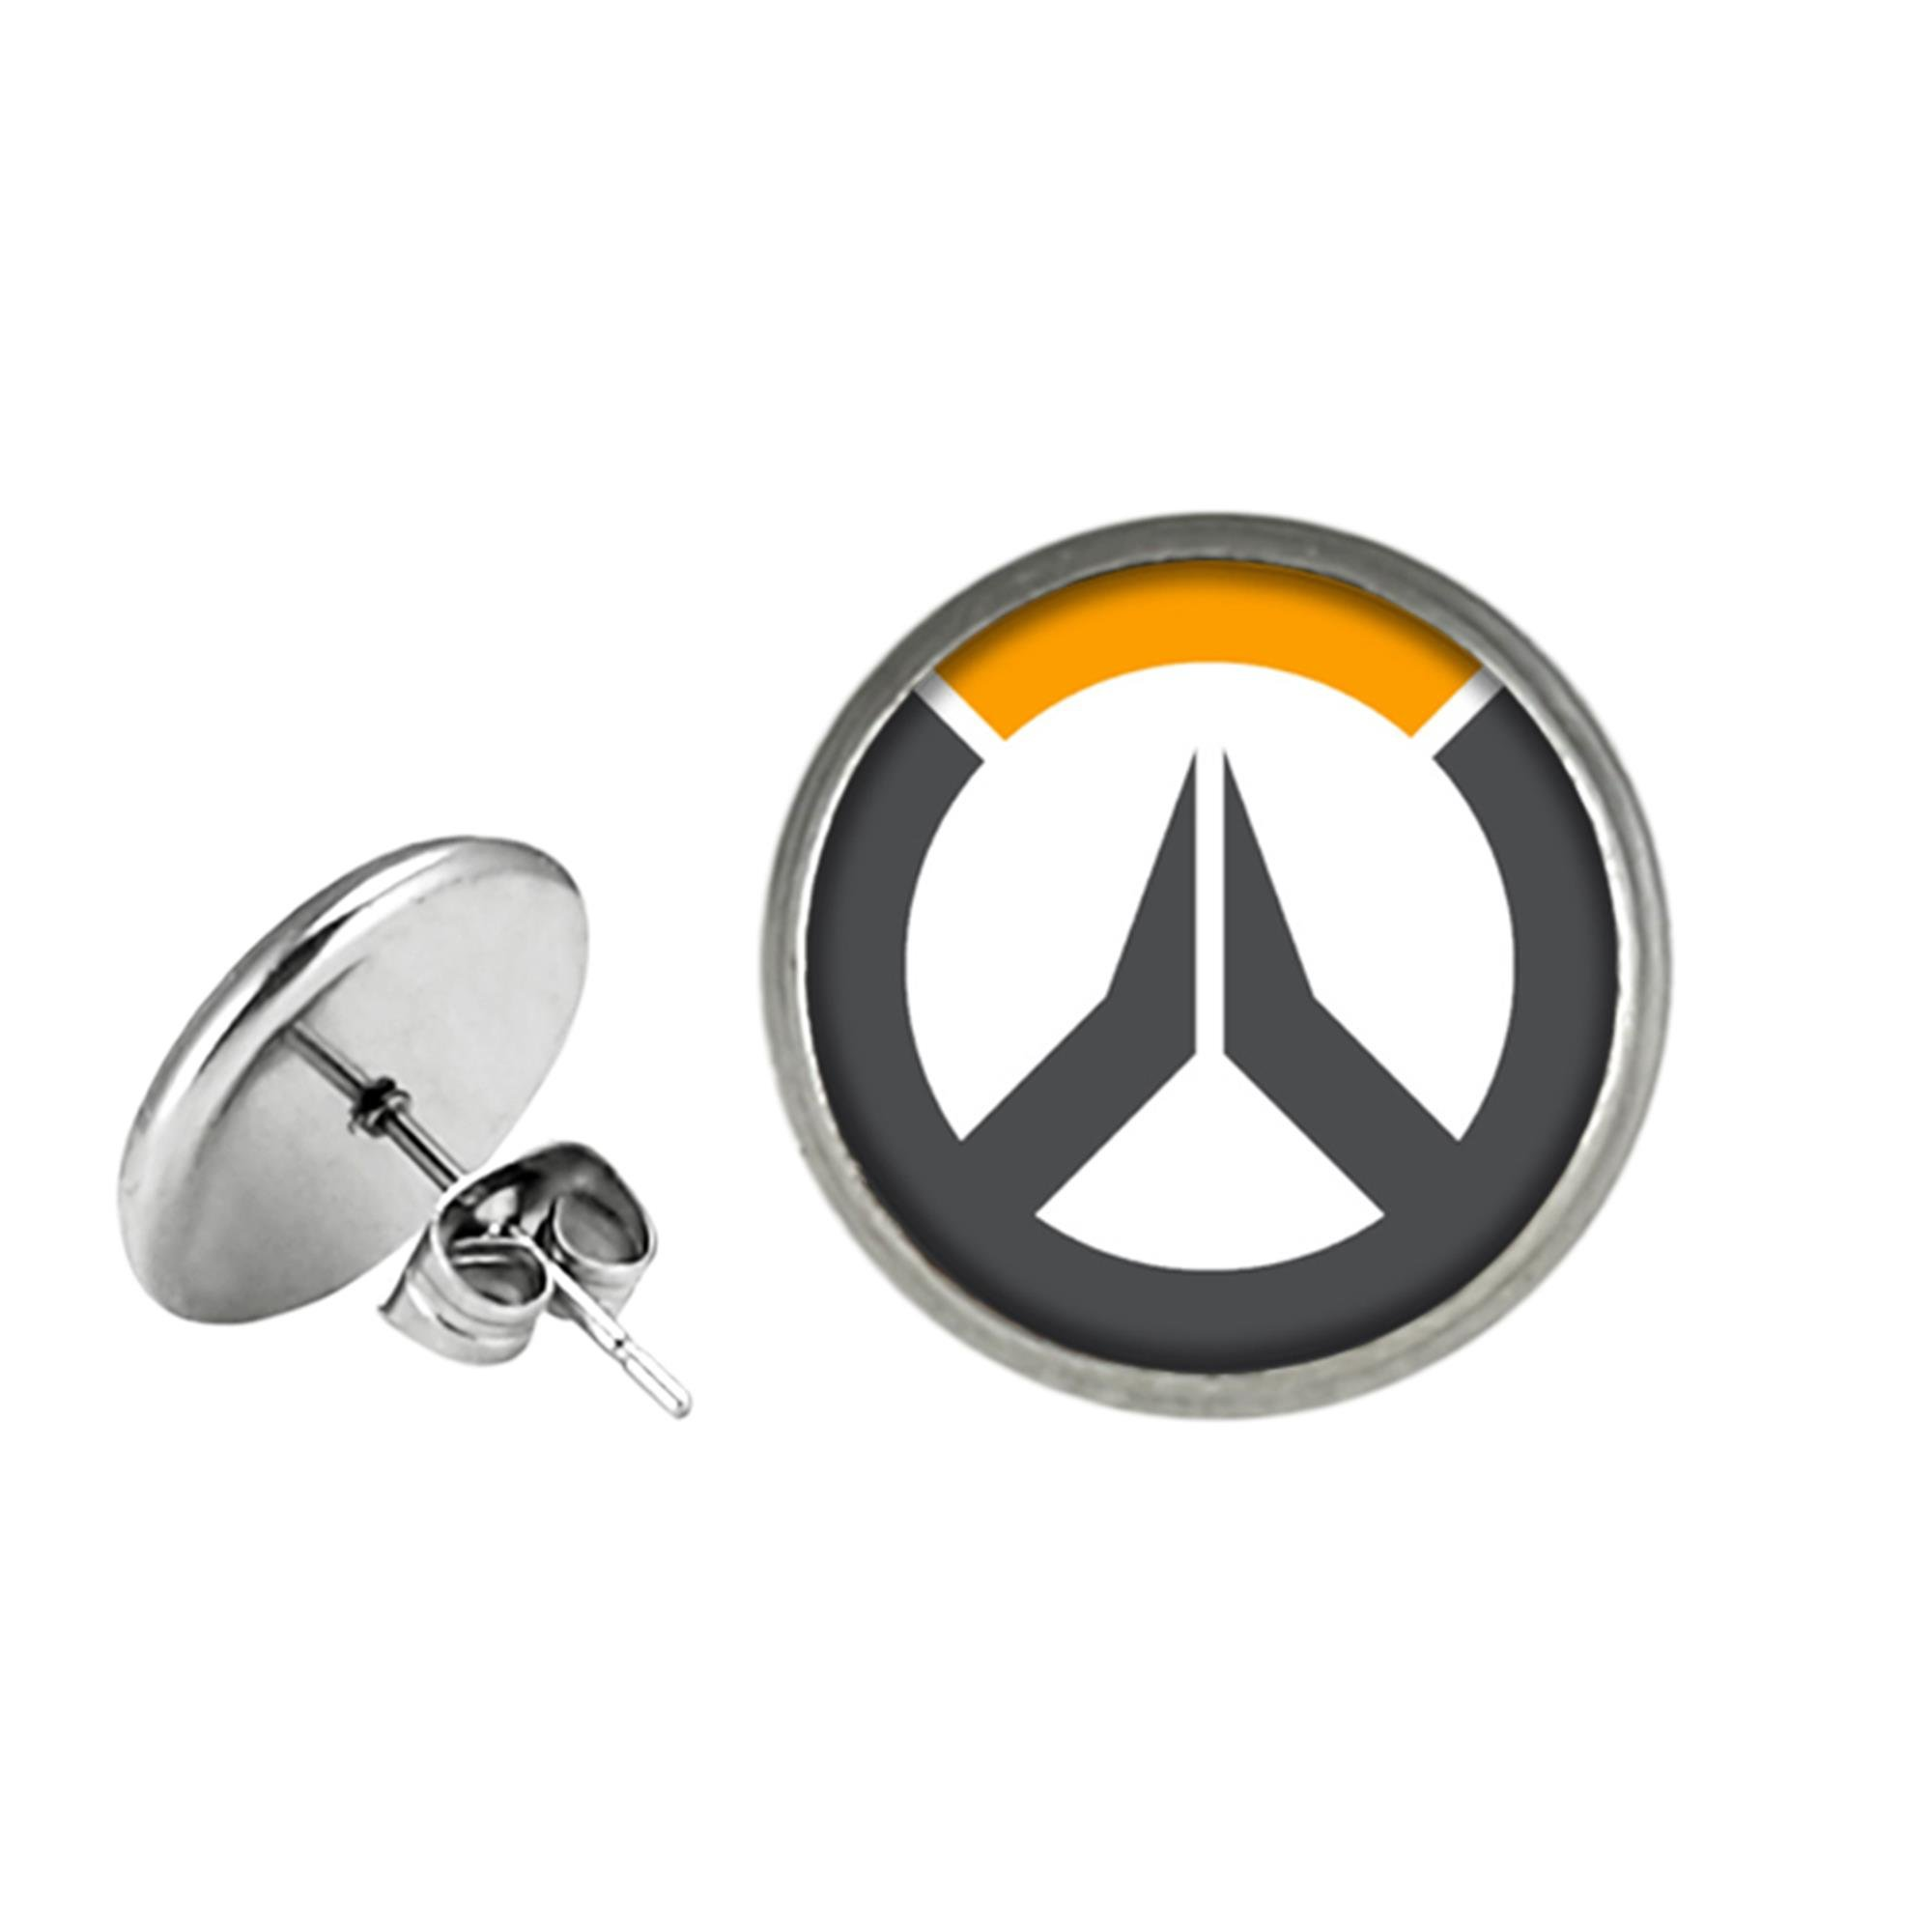 Overwatch Post Stud Earrings Character Cartoon Superhero Gaming Console PC Games Logo Theme Cosplay Premium Quality Detailed Jewelry Gift Series